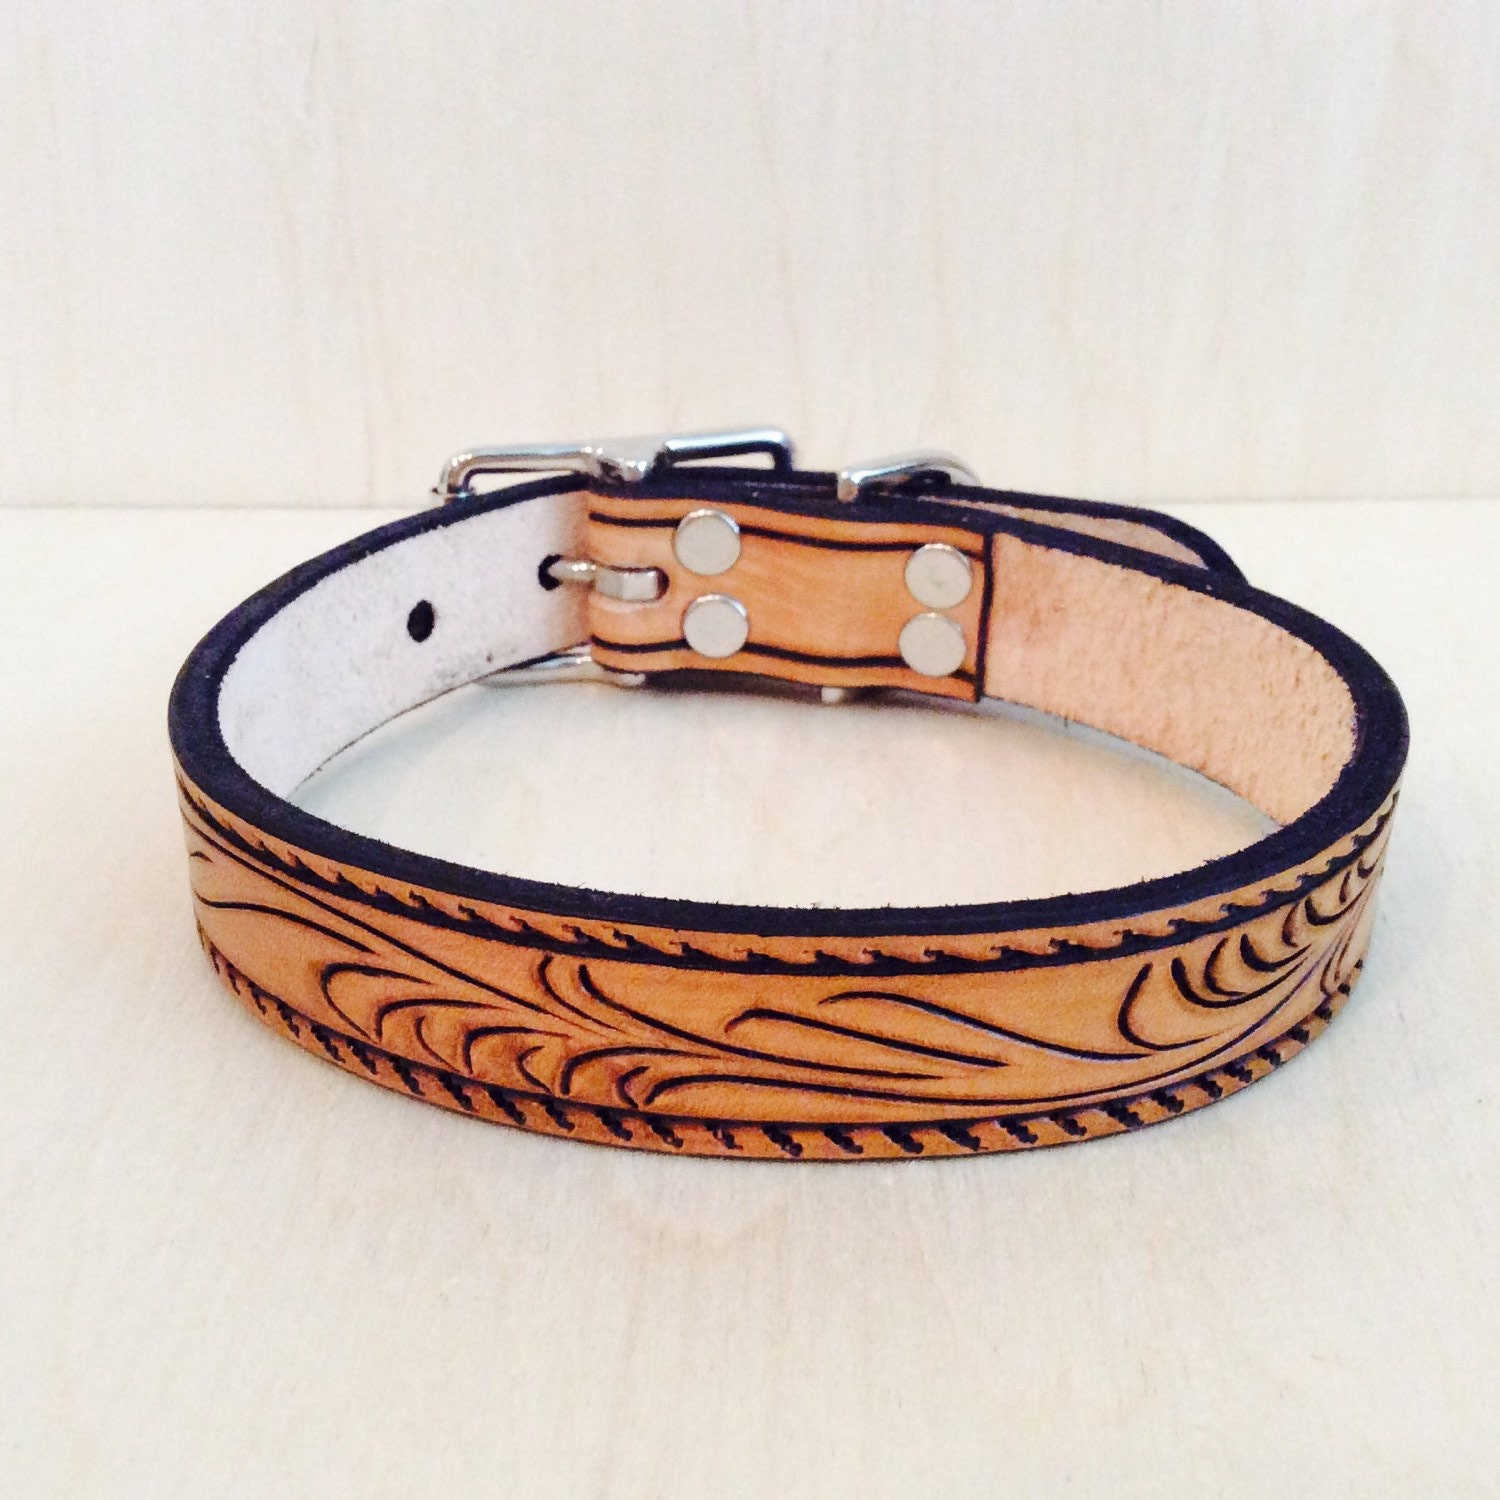 Create Your Own Leather Dog Collar